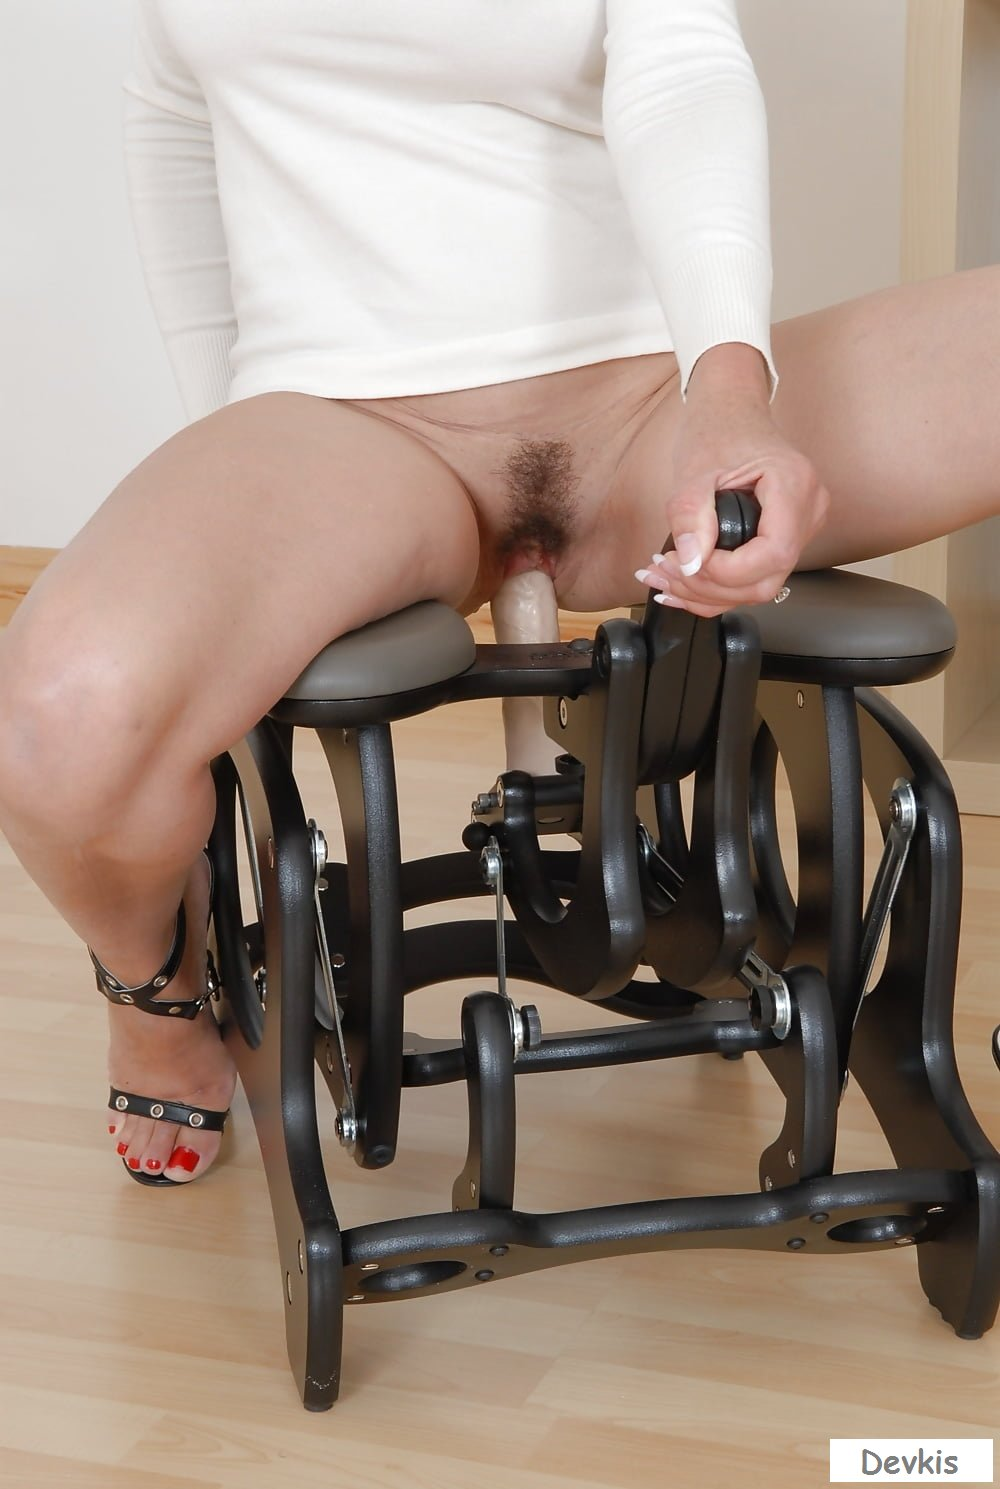 Mexican girlfriend rides on chair